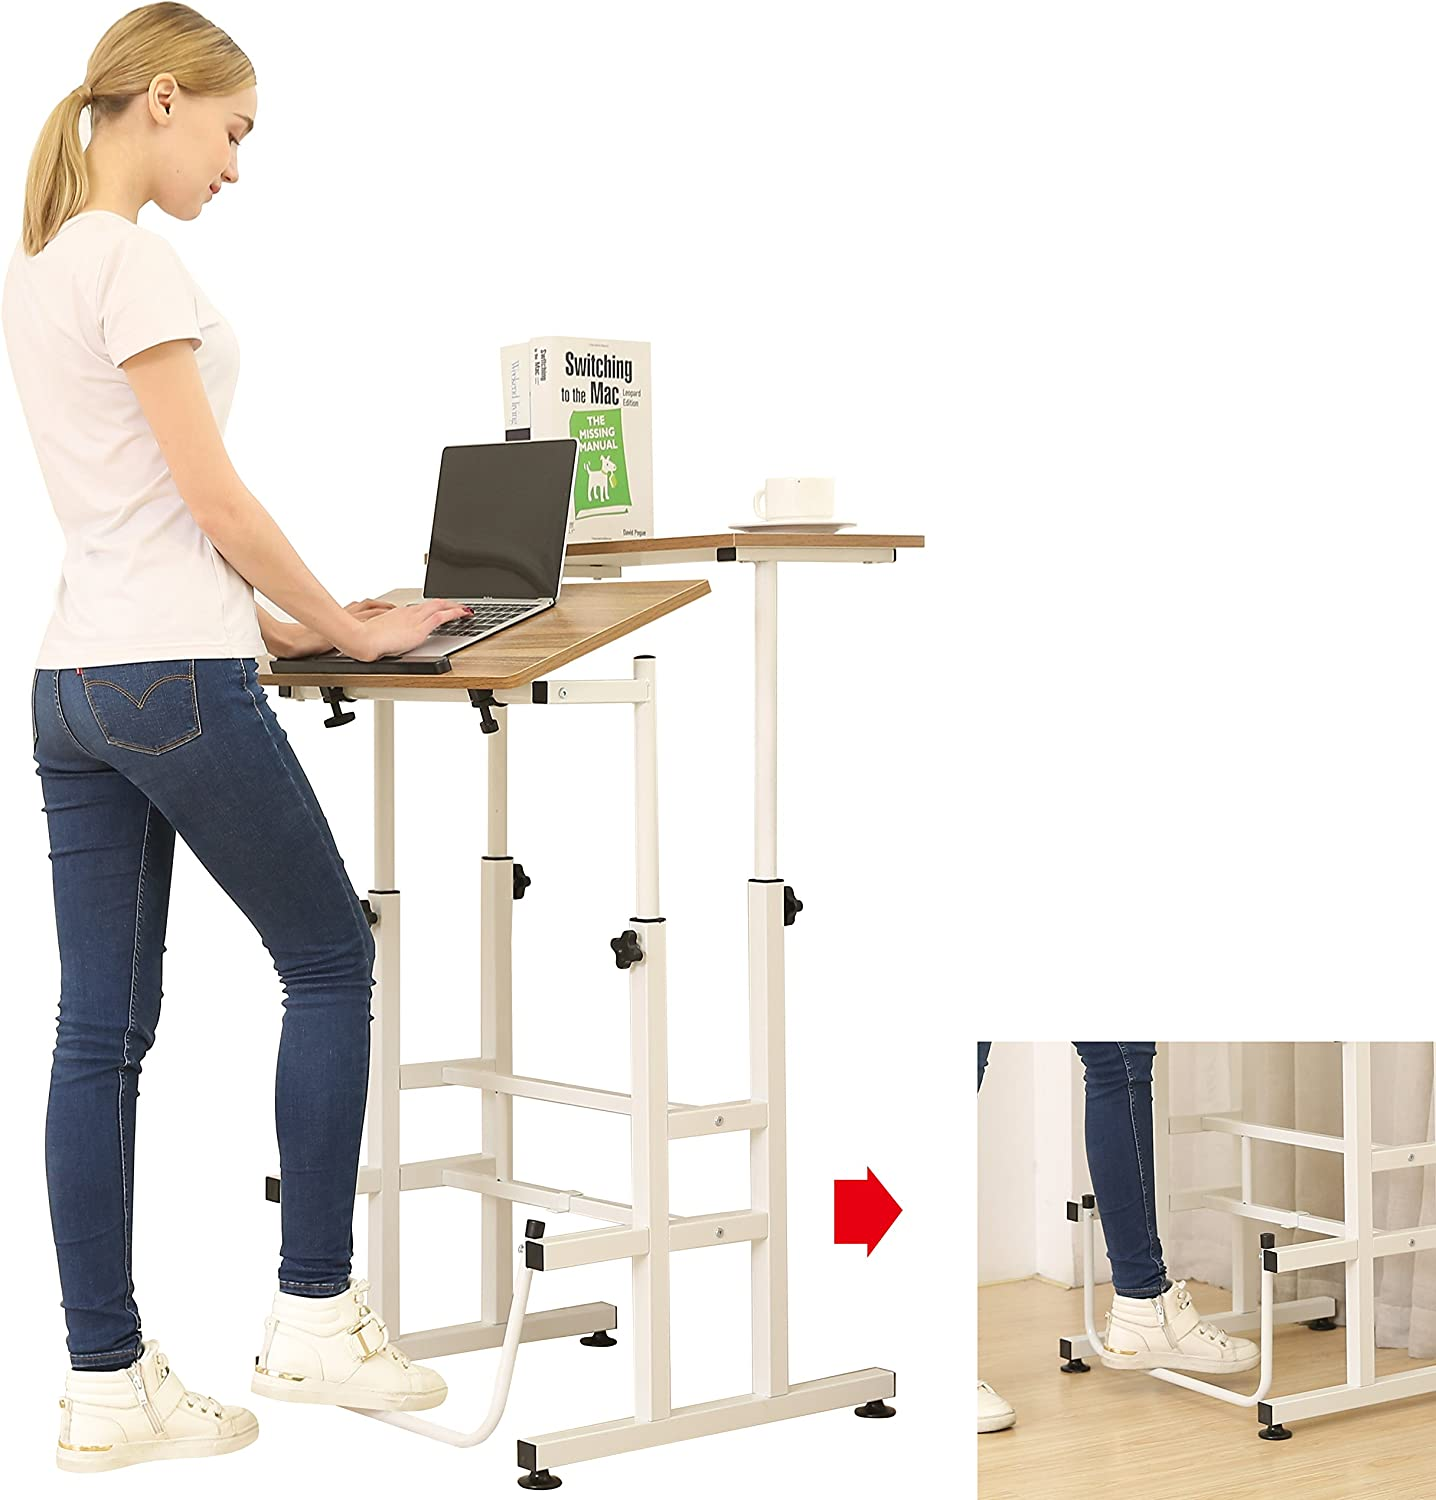 SDADI Adjustable Height Standing Desk with Swinging Footrest Optional for Standing and Seating 2 Modes, Dark Grain L101XWFDT